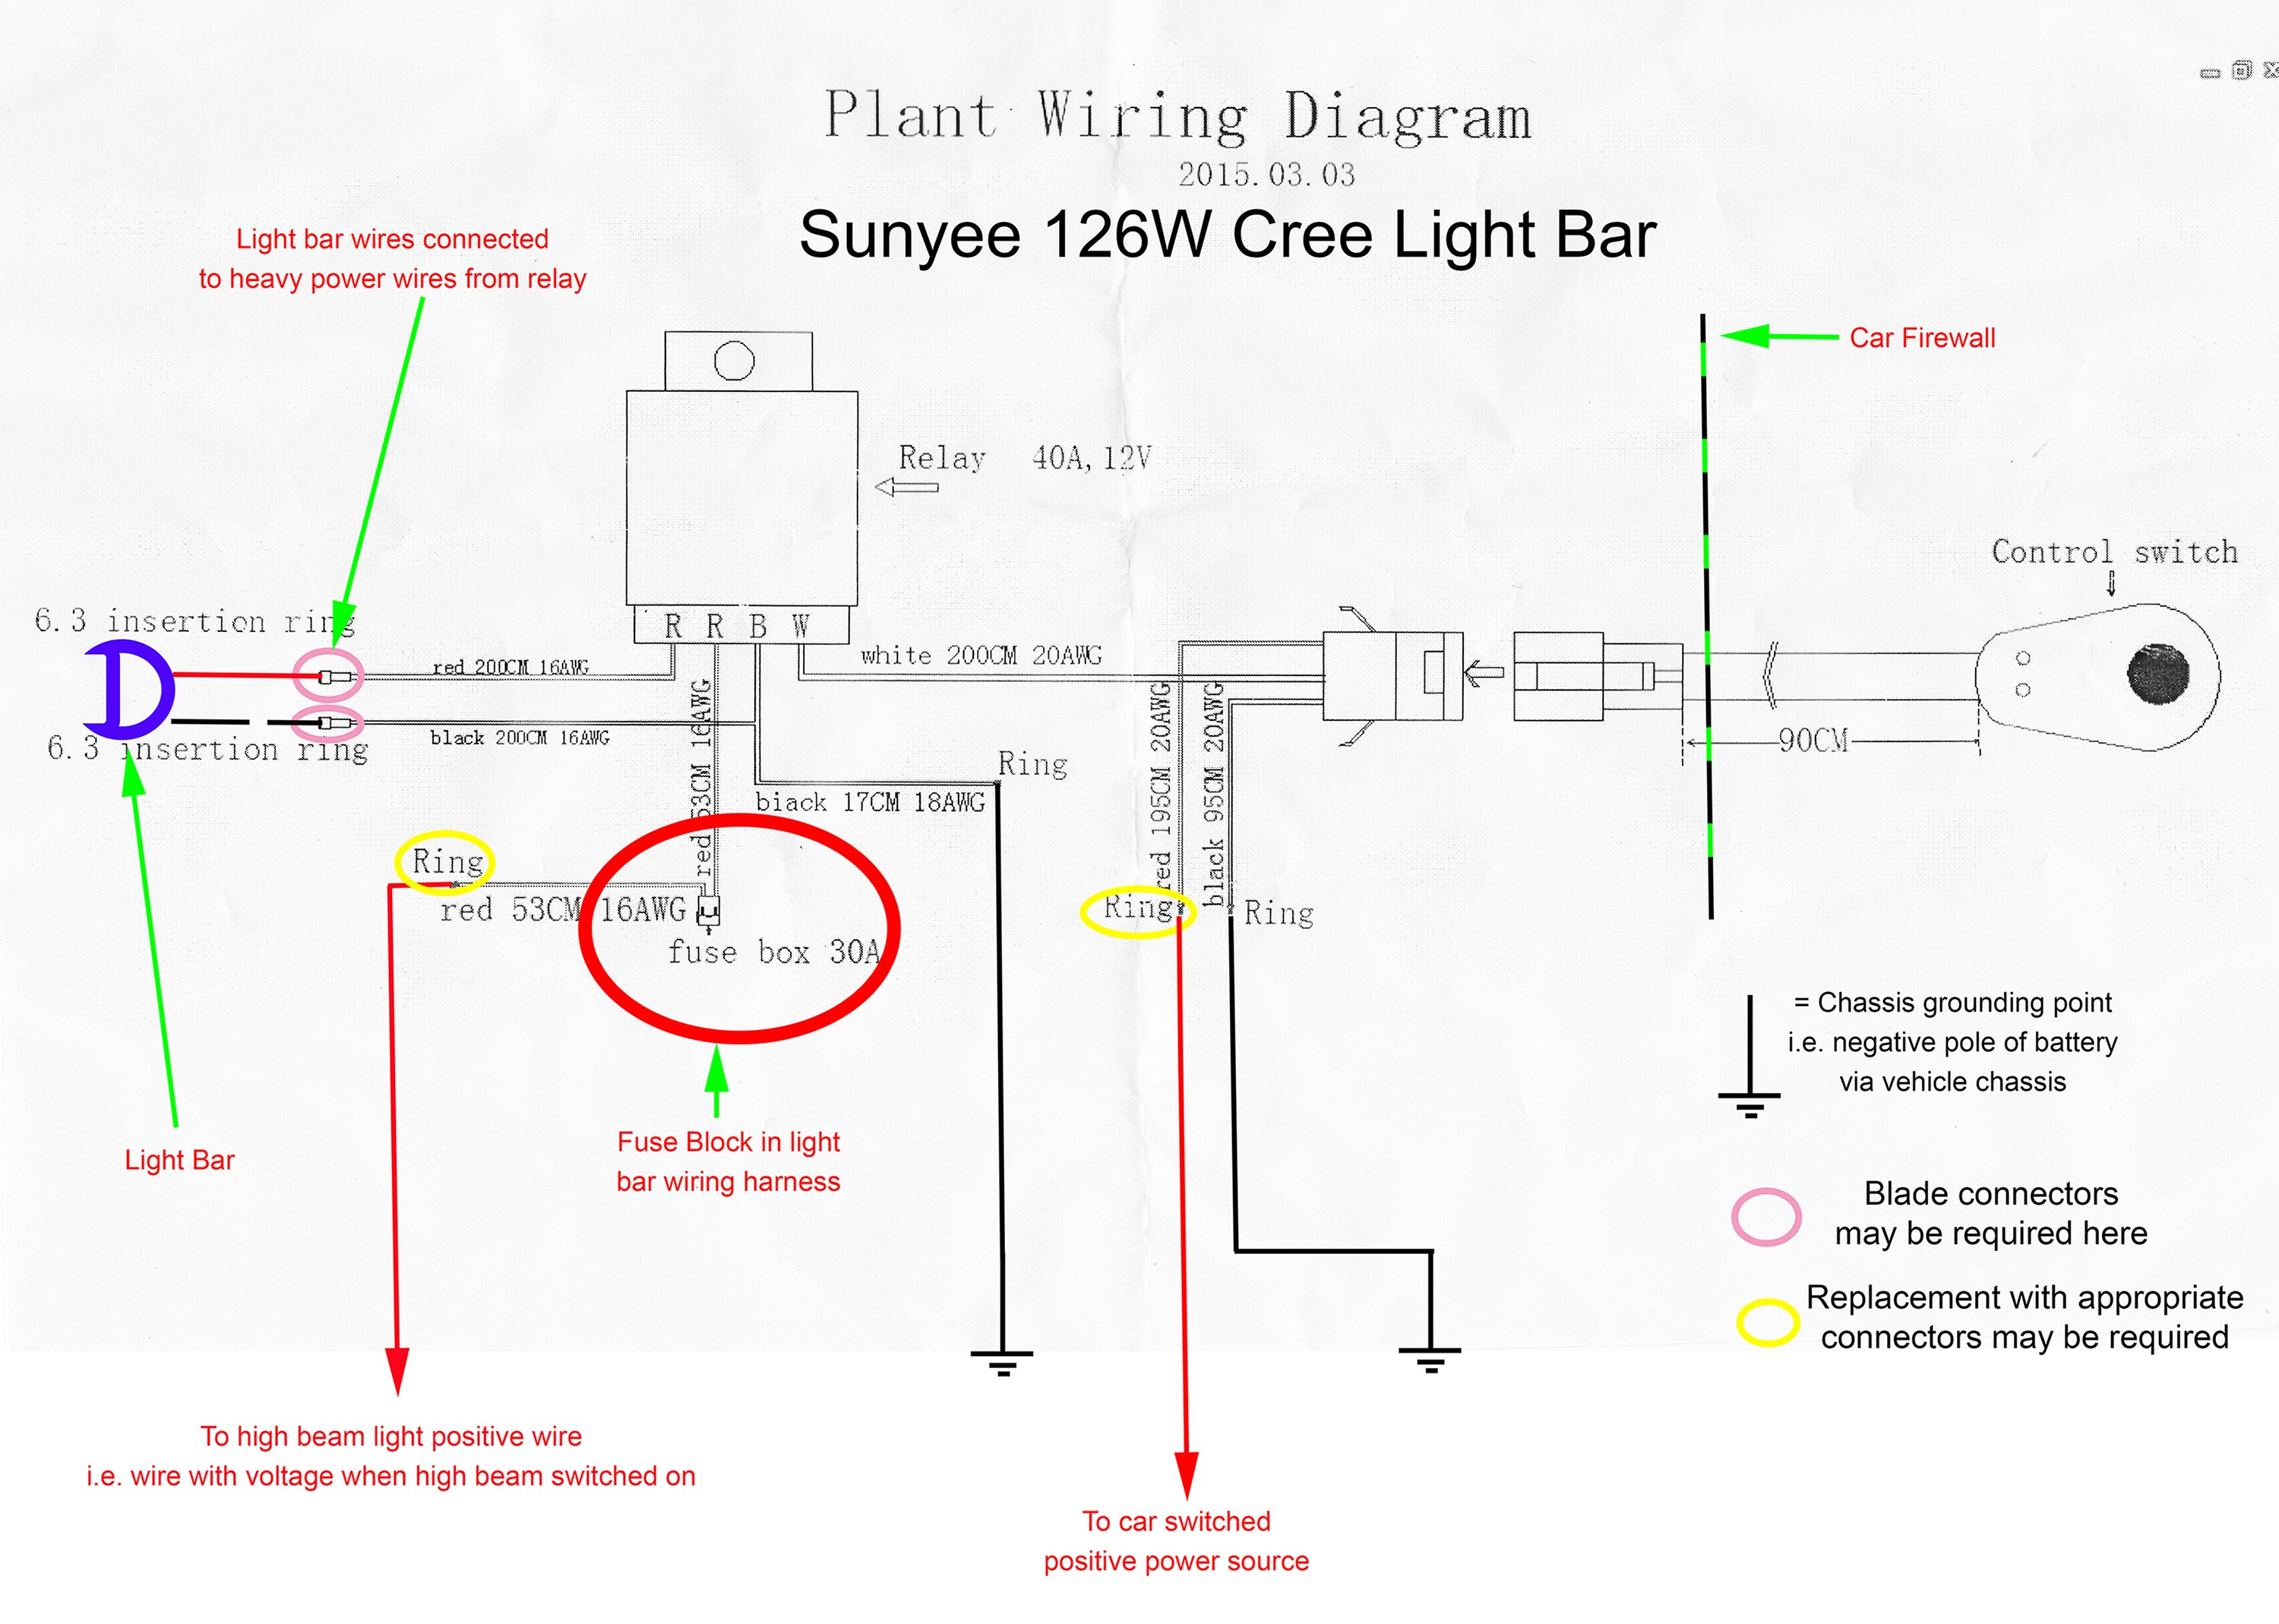 2003 toyota tacoma tail light wiring diagram light bar wiring rh detoxicrecenze com toyota tacoma brake light wiring diagram 2002 toyota tacoma tail light wiring diagram